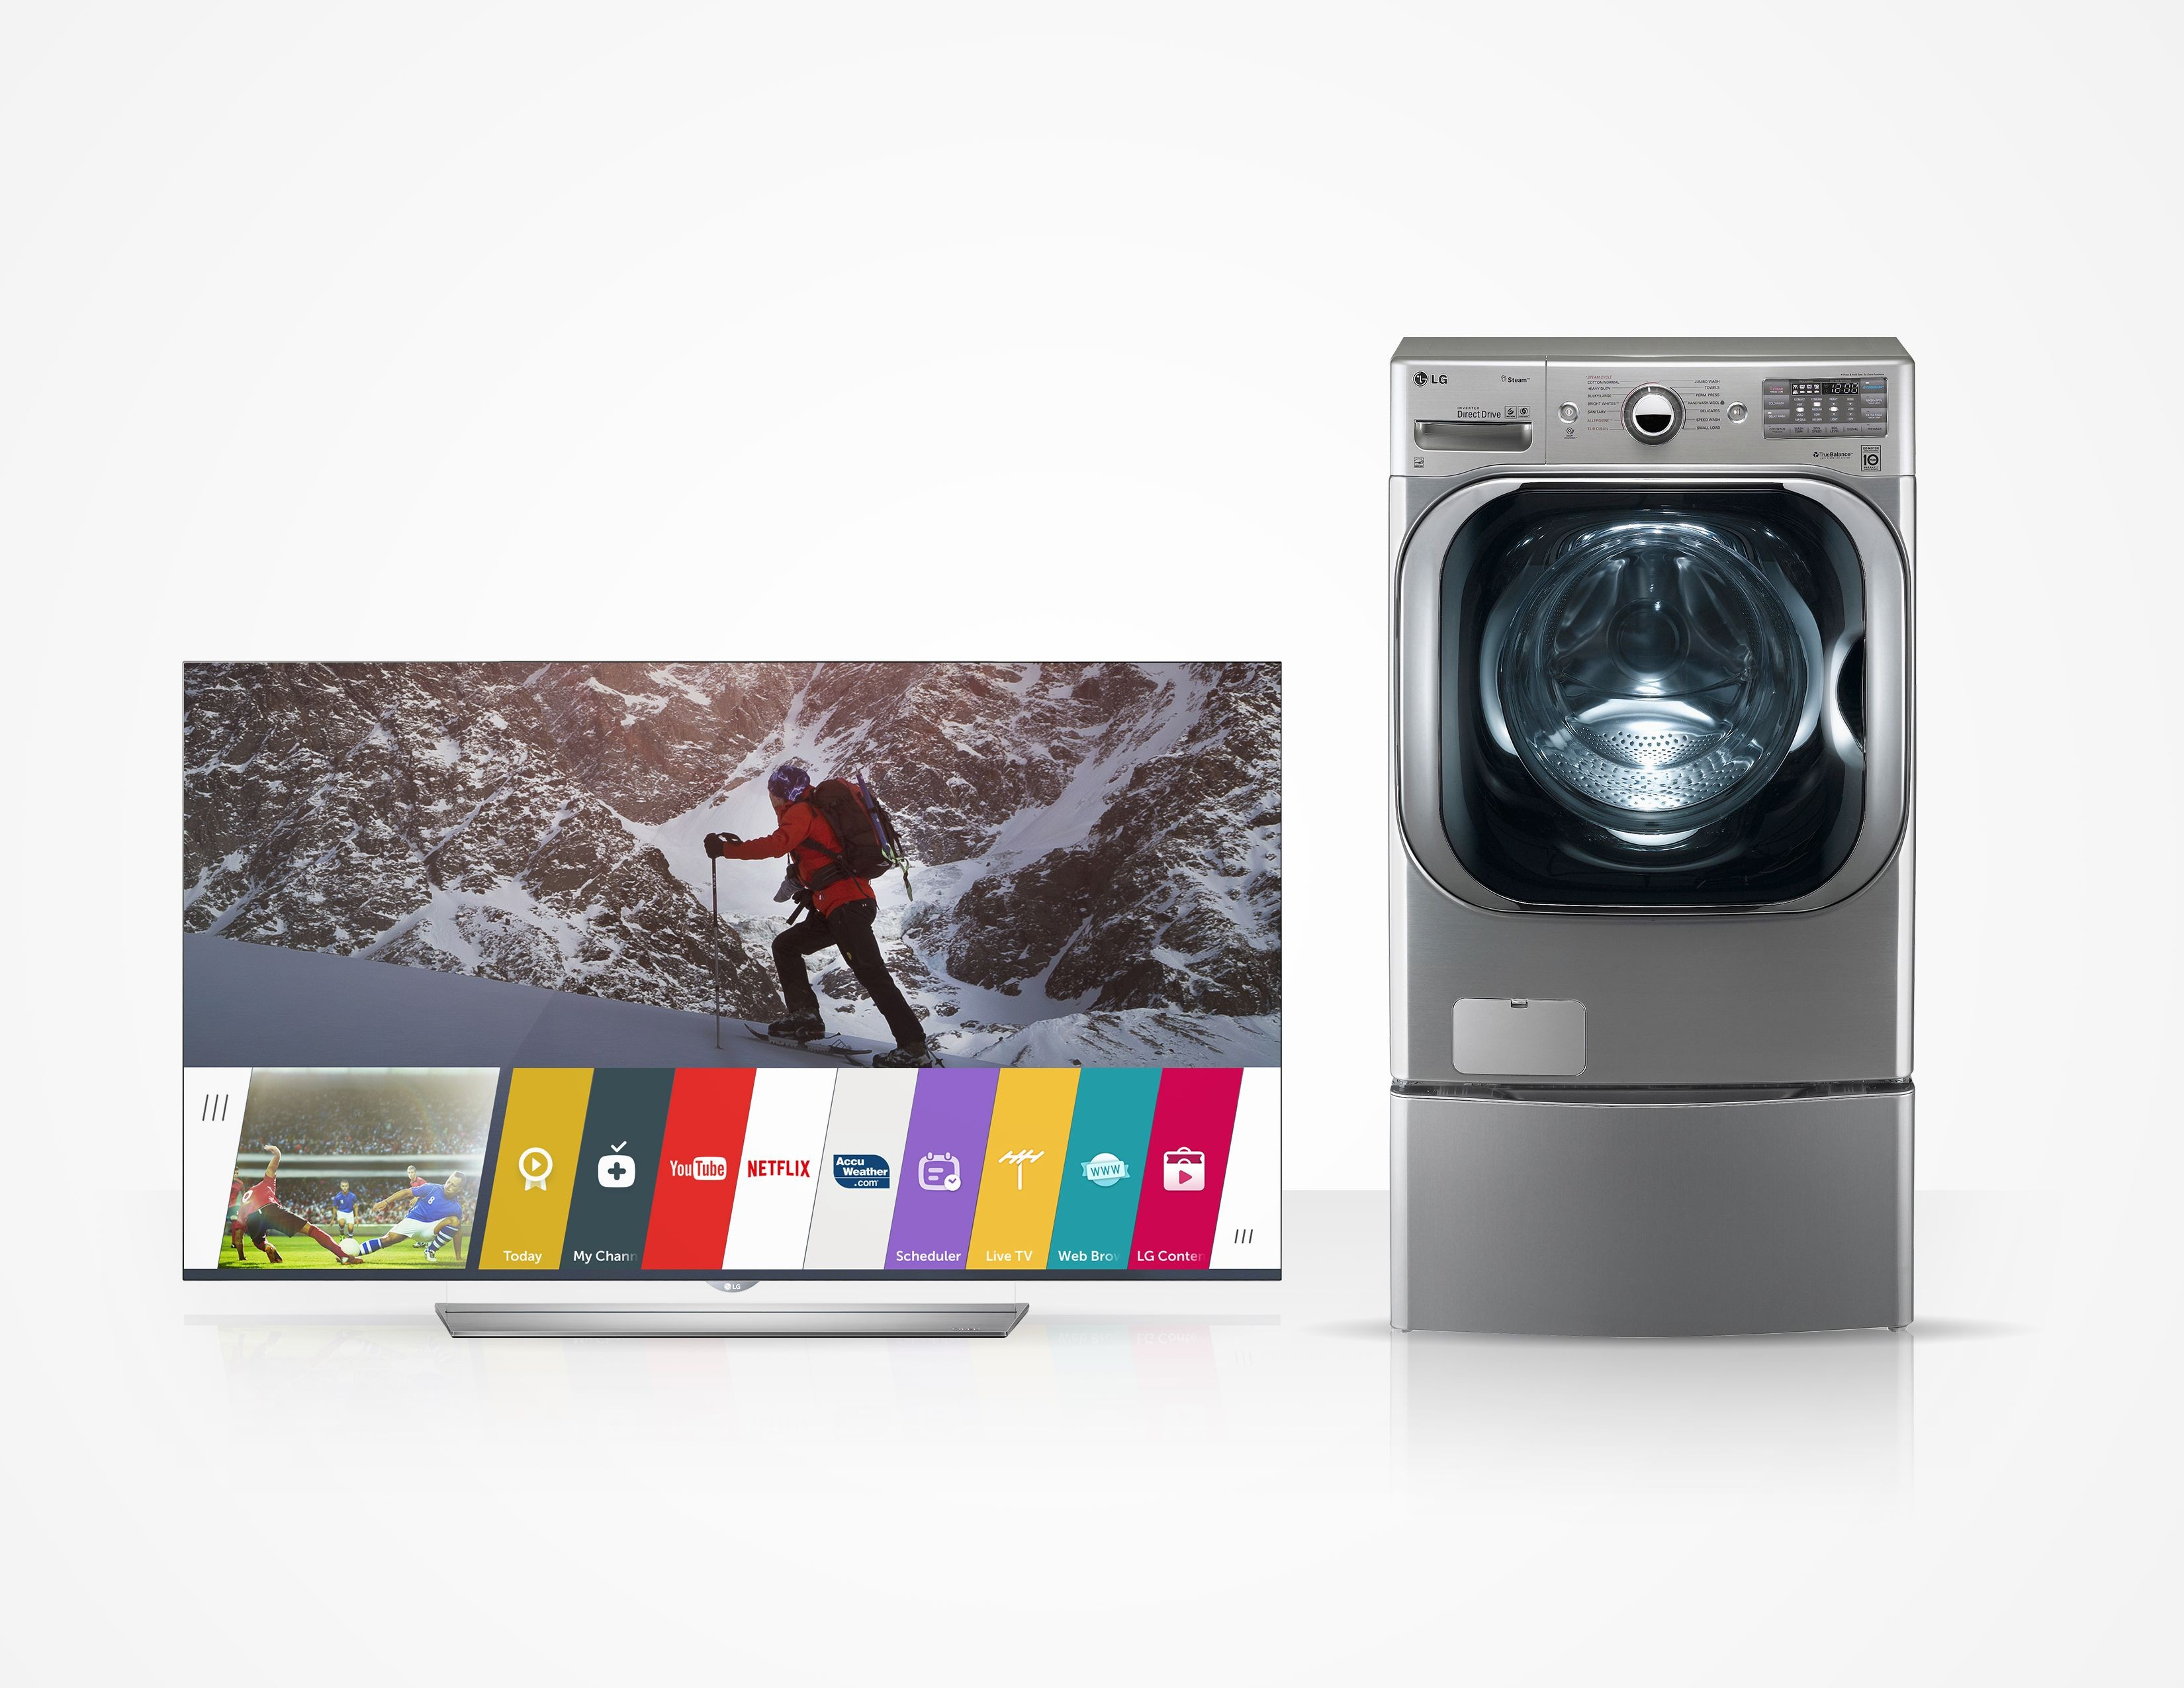 USA TODAY's Best Television of the Year 2015 award-winner LG flat 4K OLED TV and the Best Washing Machine of the Year, LG's Mega-Capacity Front-Load Washer.